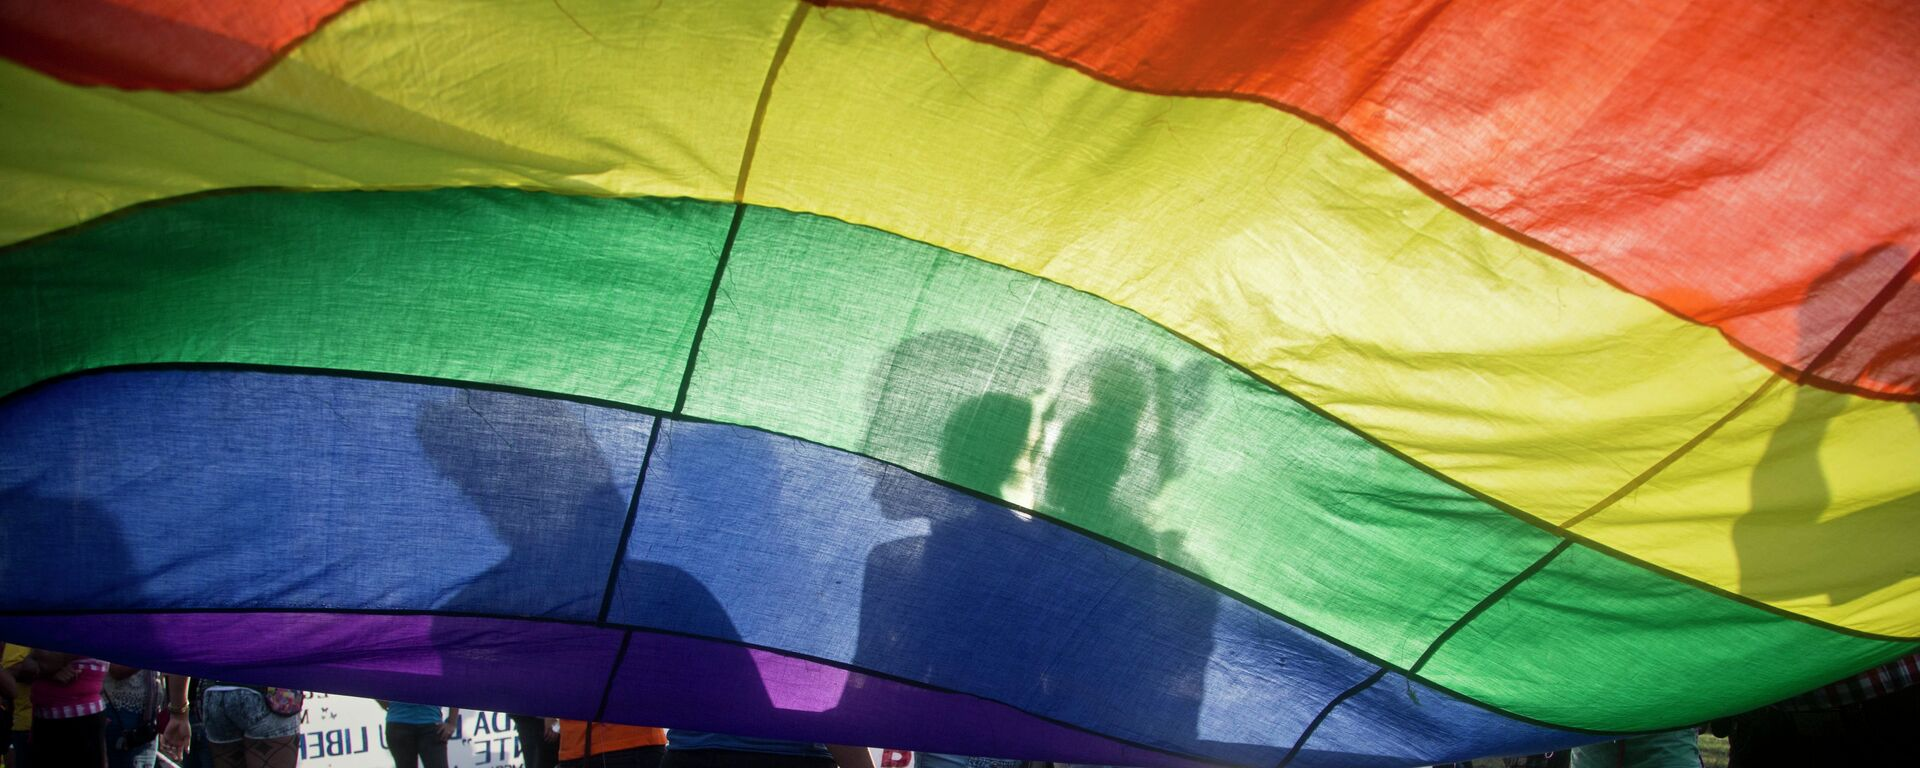 Members of the LGBT movement hold a gay pride flag as they attend a march to mark the International Day Against Homophobia in Managua, Nicaragua, Sunday, May 17, 2015. - Sputnik Mundo, 1920, 12.03.2021